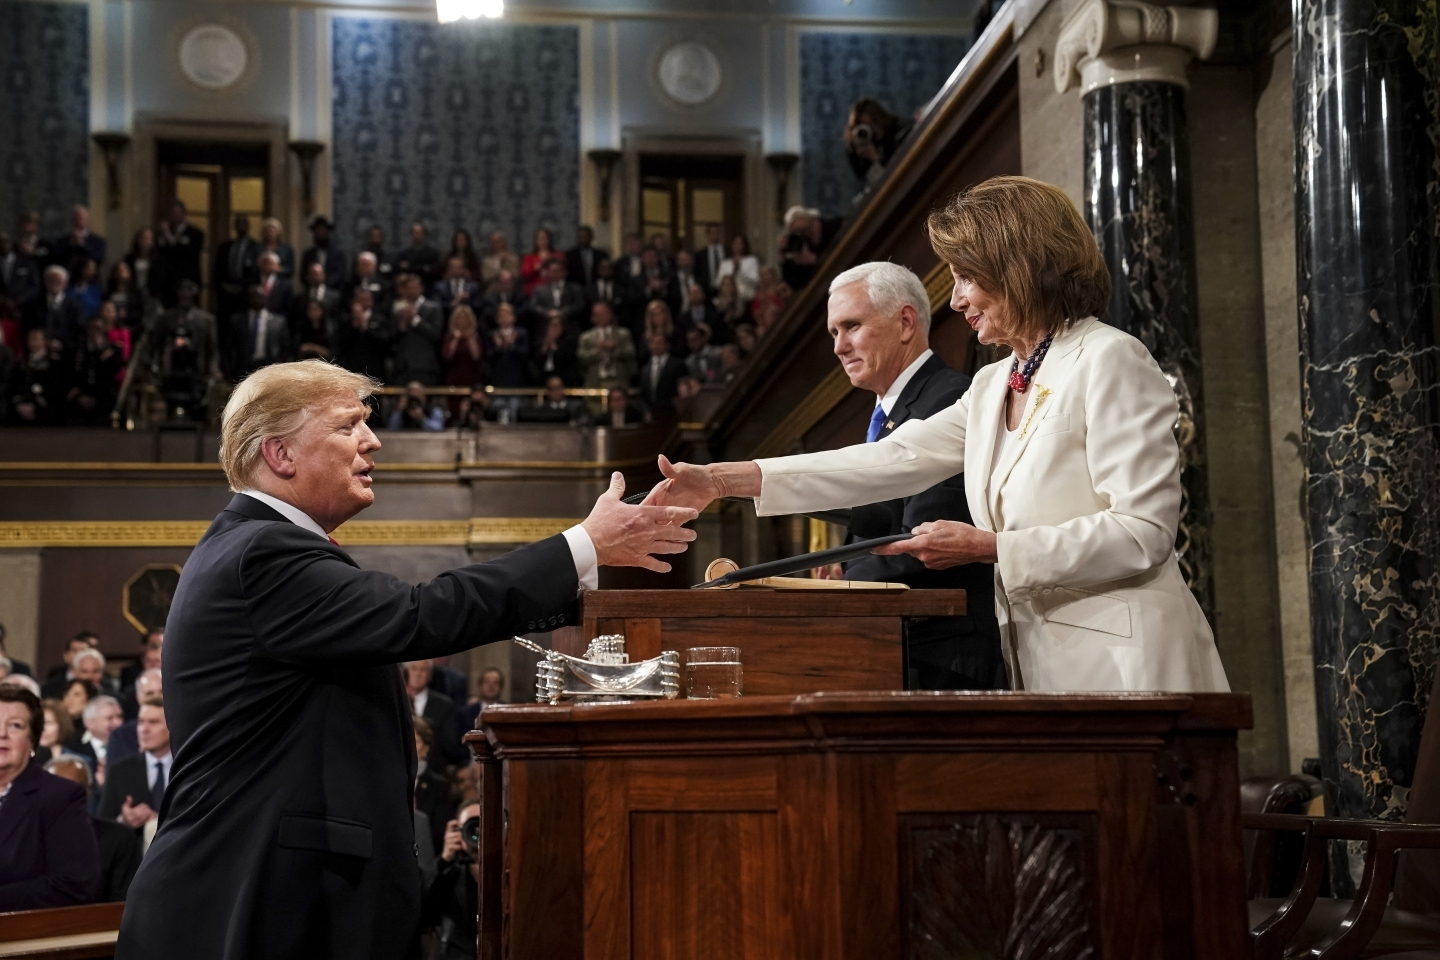 President Donald Trump shakes hands with House Speaker Nancy Pelosi as he arrives in the House chamber before giving his State of the Union address on February 5, 2019. (Doug Mills/The New York Times via AP, Pool)